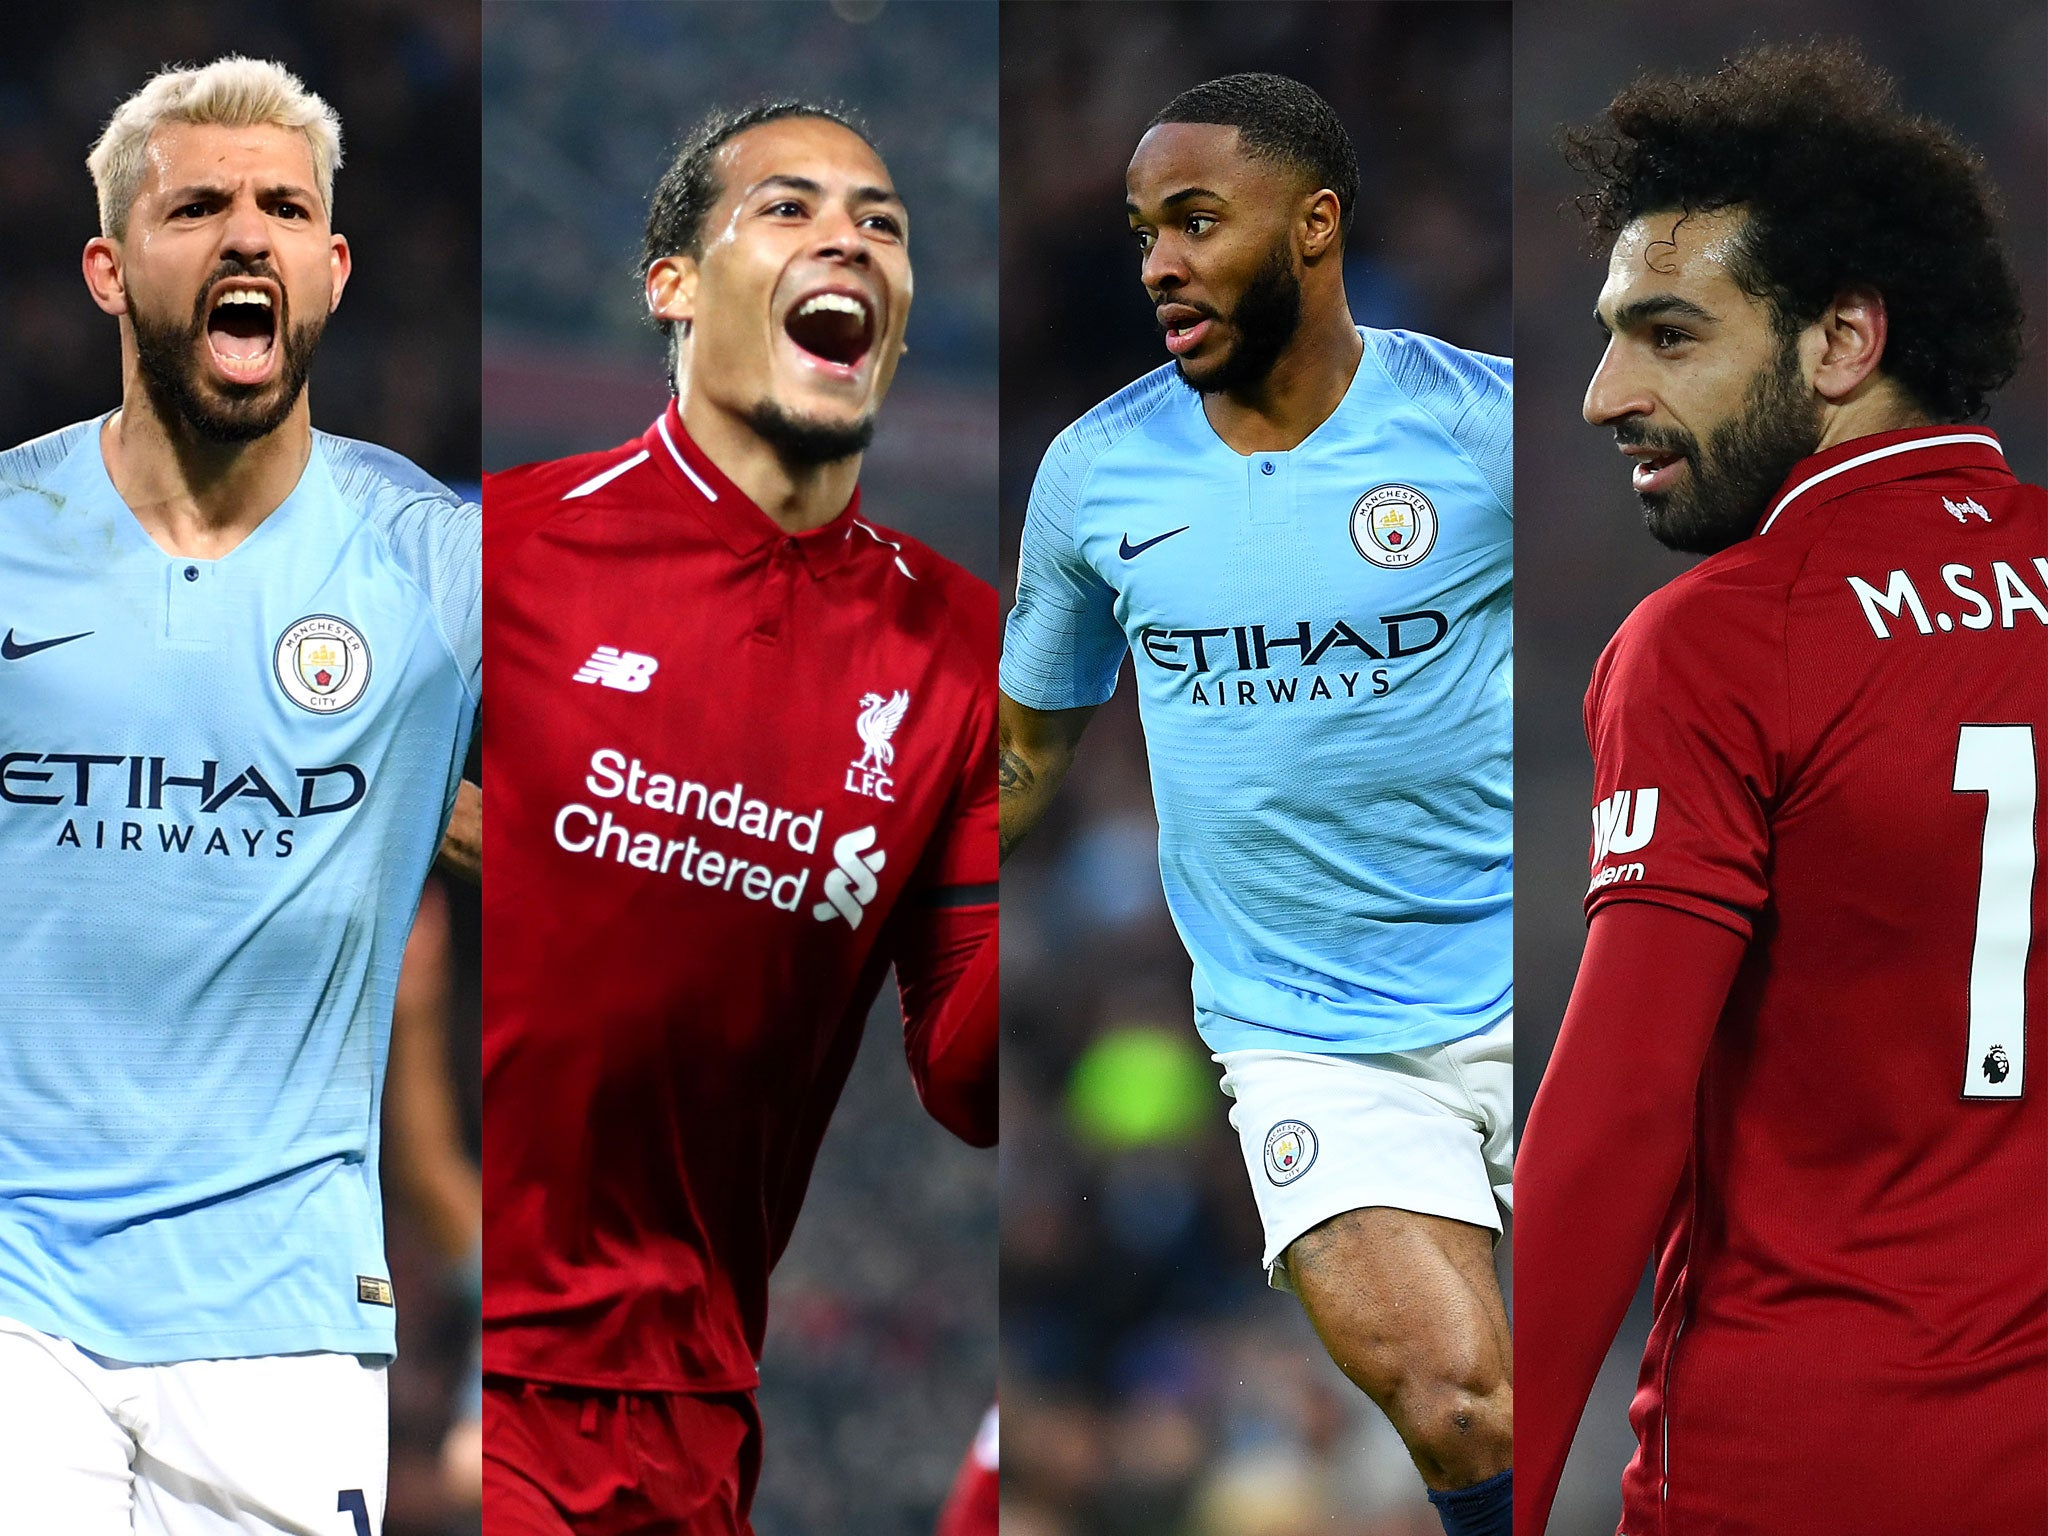 2c51e04769d Premier League title race fixtures: Who has the best run-in - Man City or  Liverpool? | The Independent